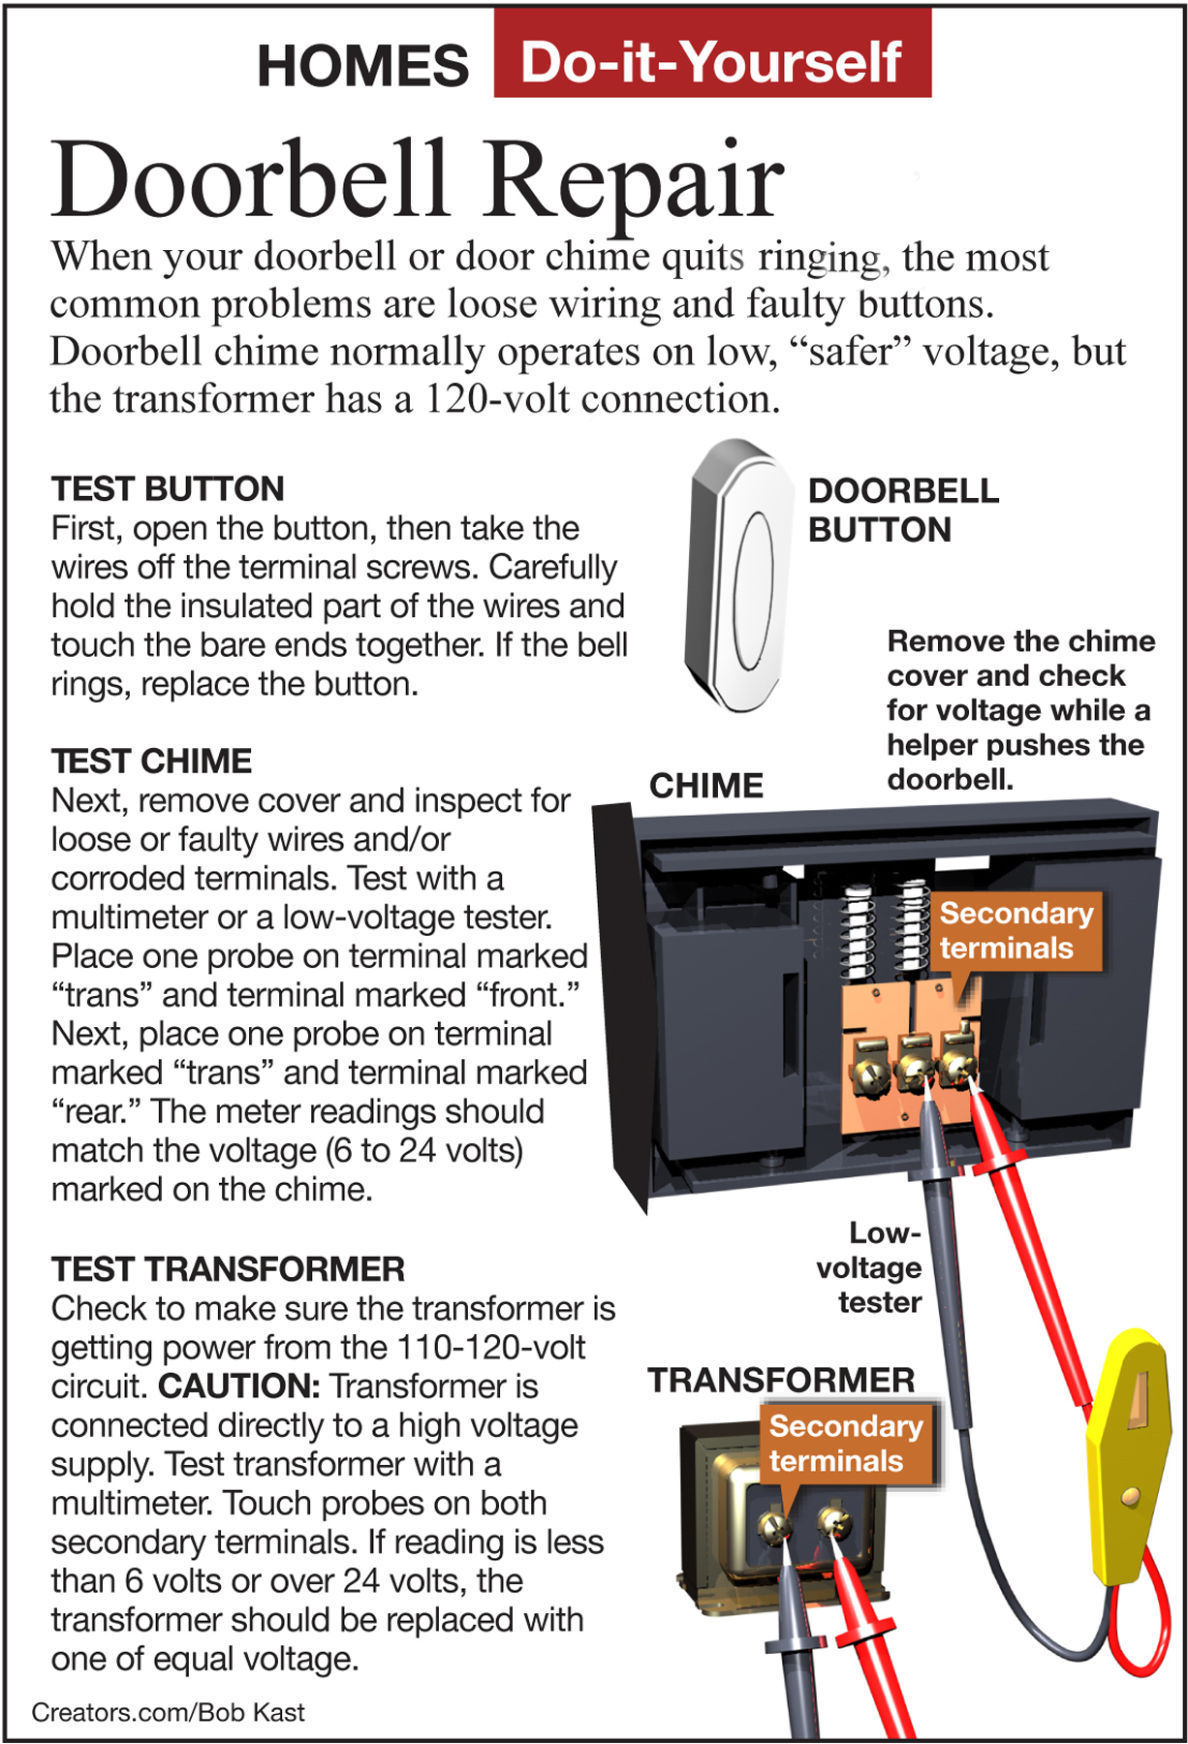 hight resolution of james dulley install a louder doorbell chime siouxland homes siouxcityjournal com sc 1 st sioux city journal